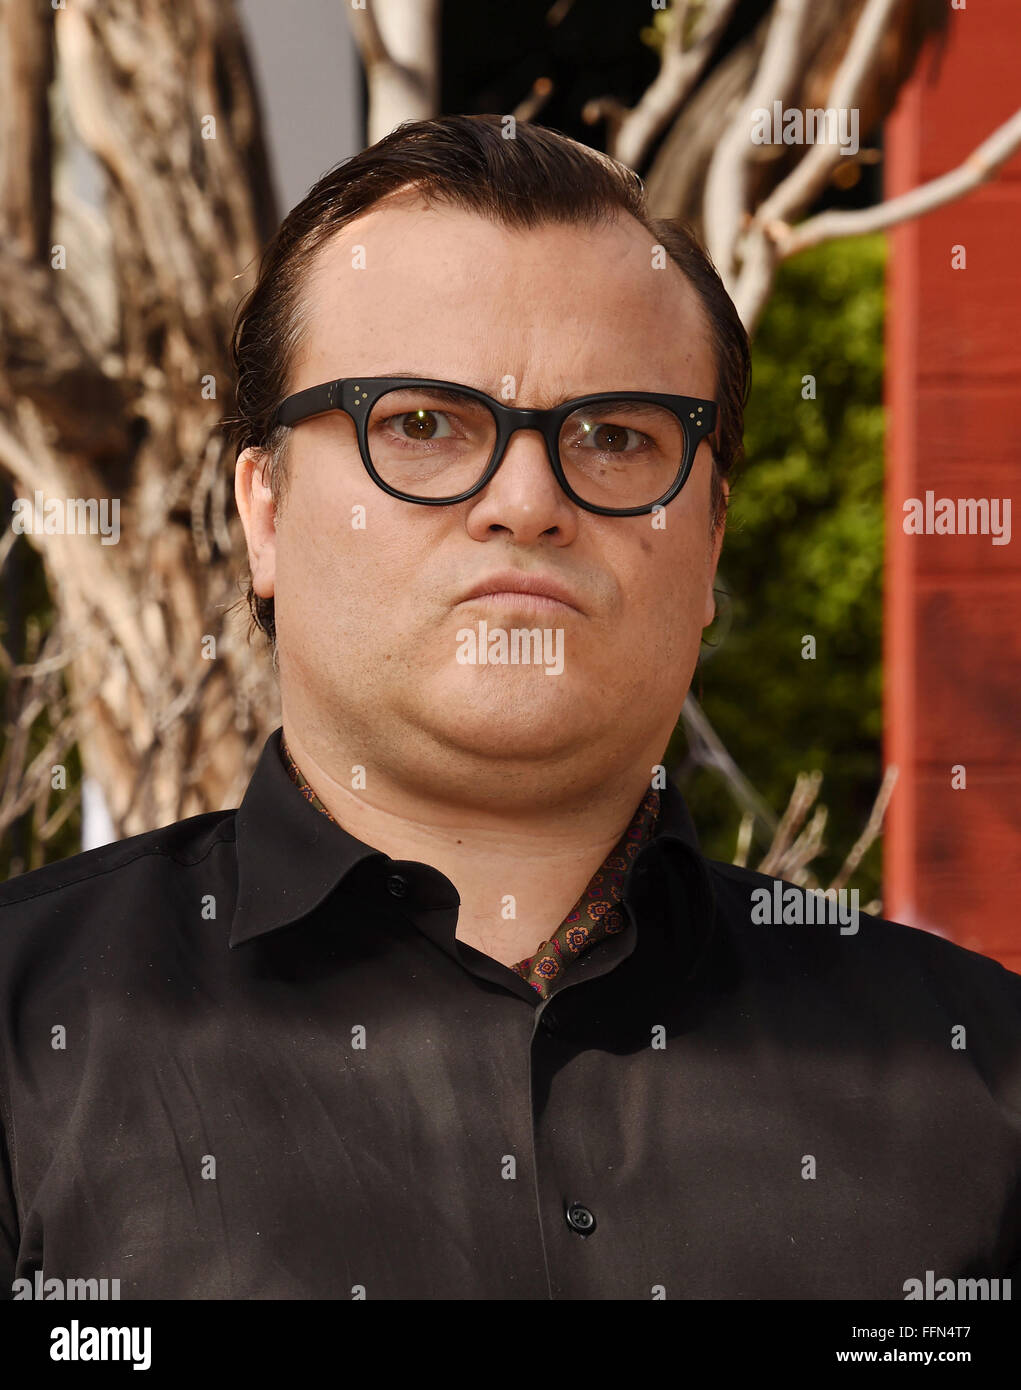 Actor Jack Black attends the Premiere Of Sony Entertainment's 'Goosebumps' at the Regency Village Theater - Stock Image